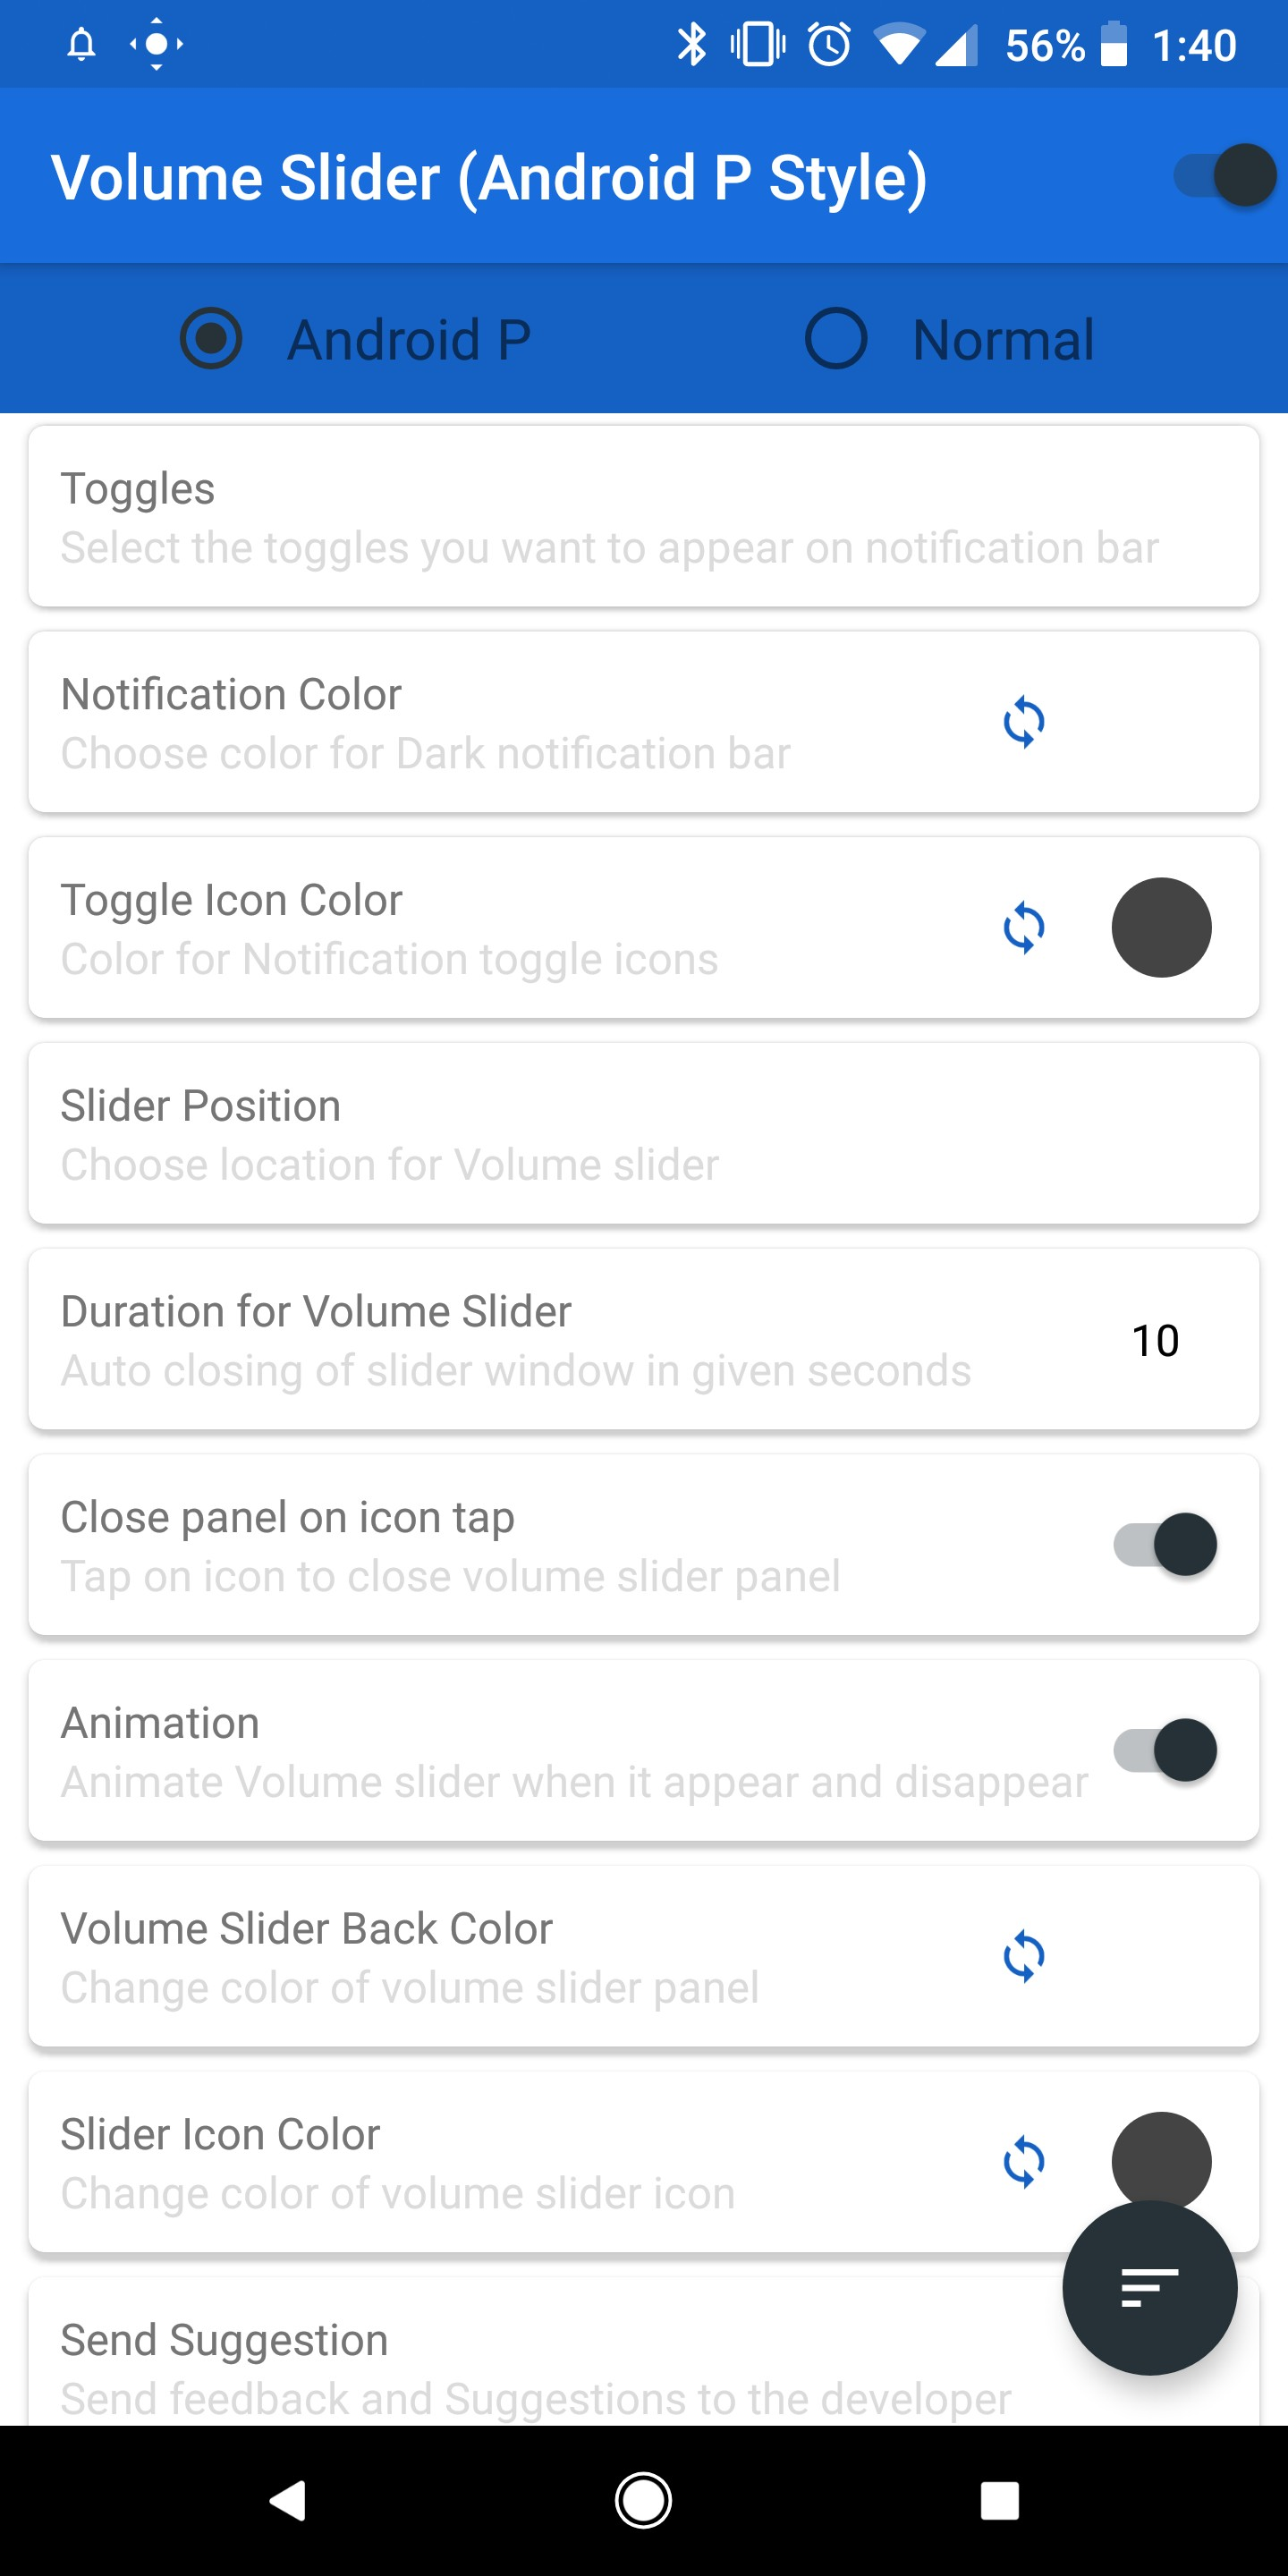 Here's how to bring Android P's volume slider and launcher